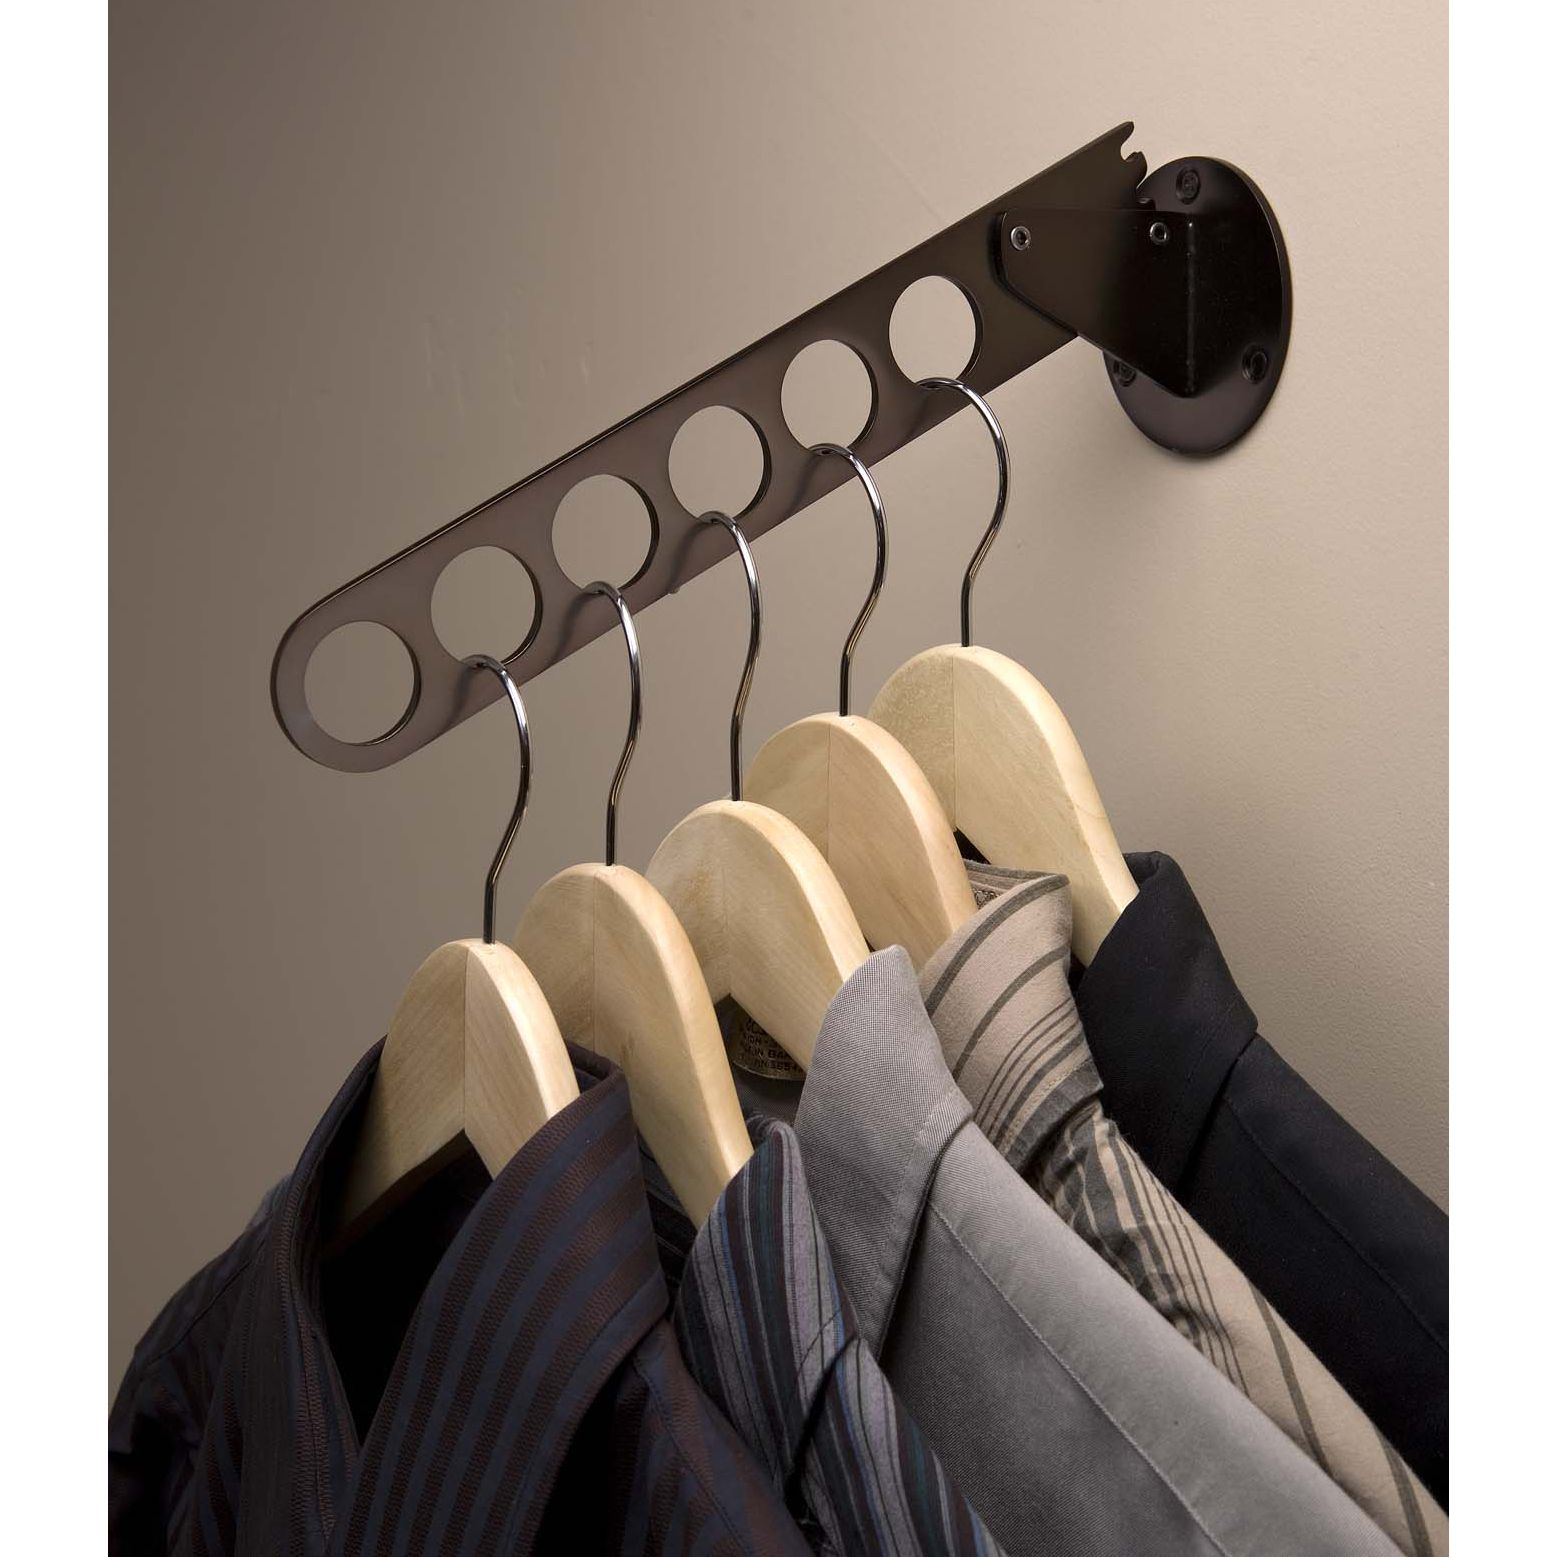 for upper level laundry Laundry Valet Rod Image